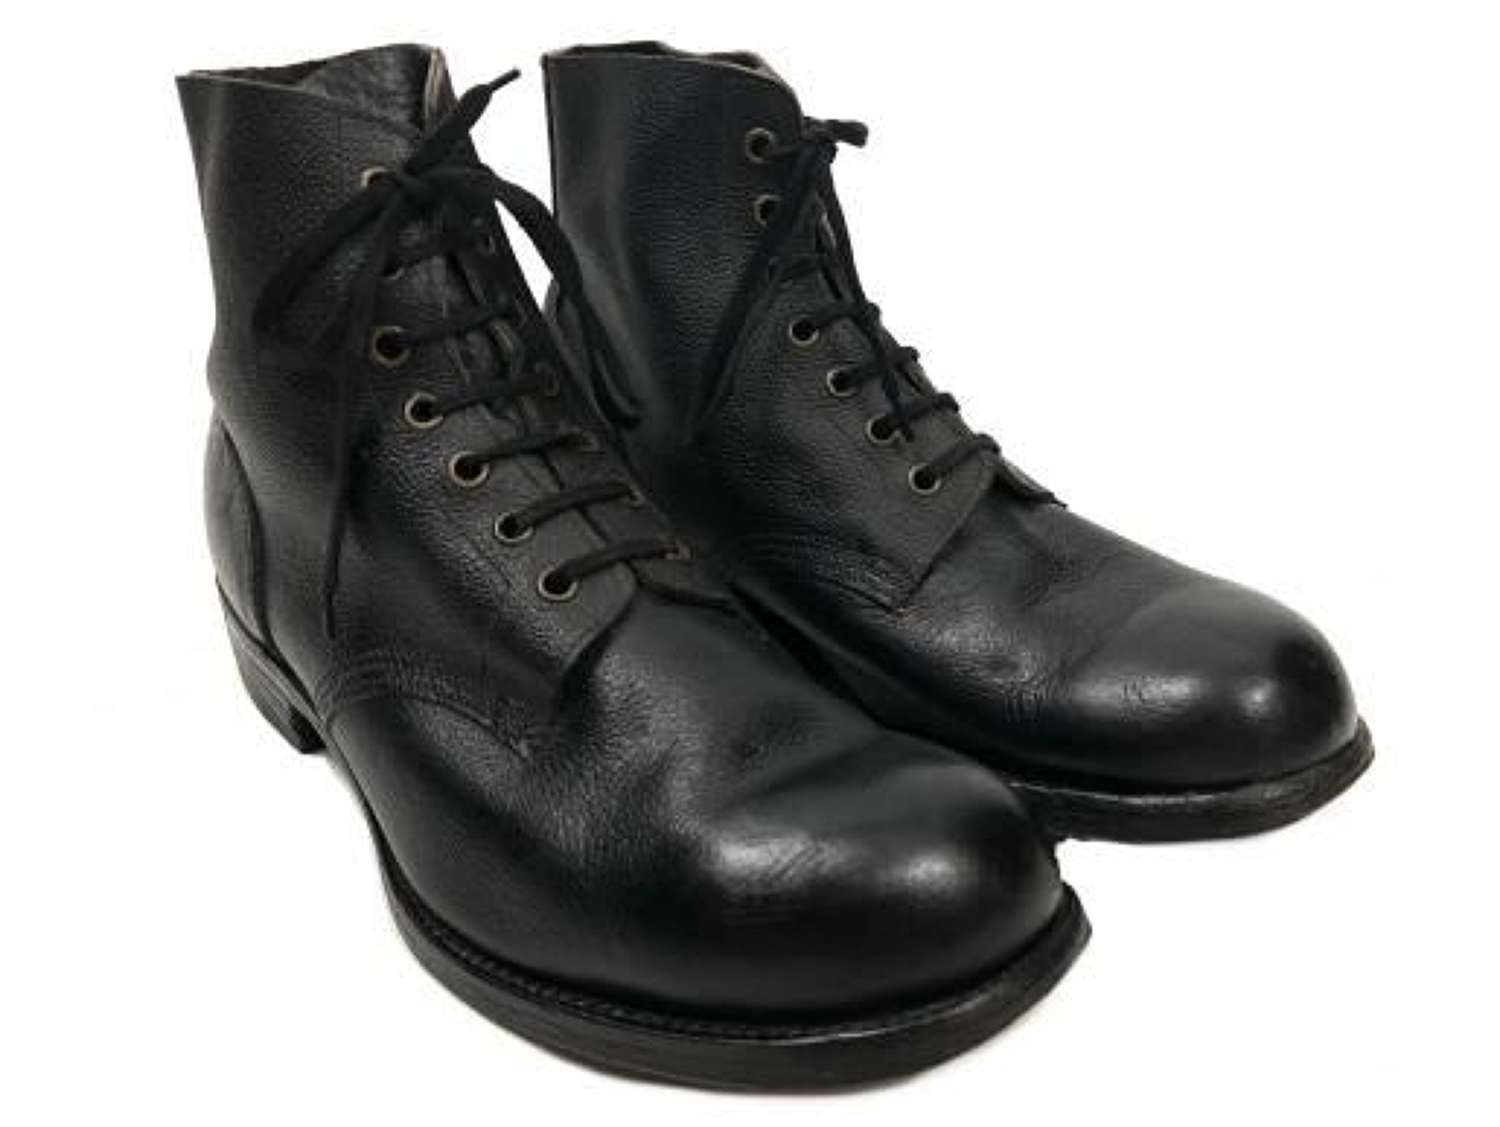 Original 1948 Dated RAF Ordinary Airman's Black Ankle Boots - Size 7